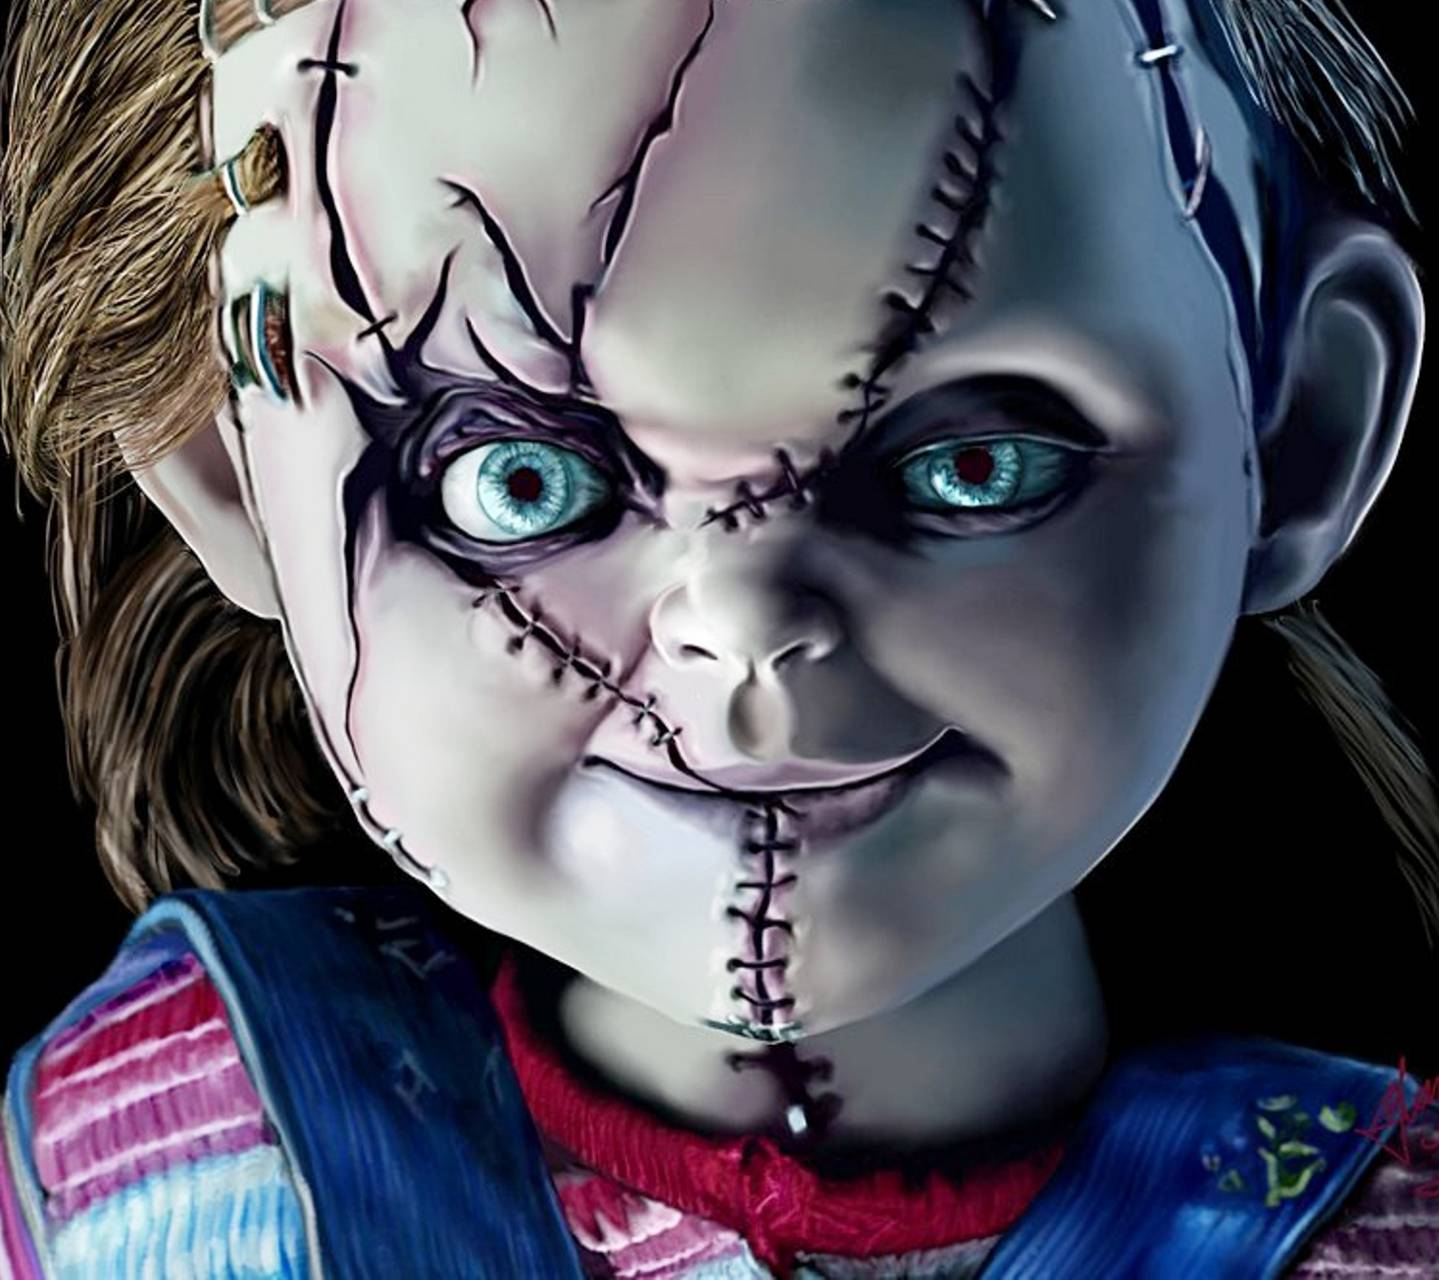 Cute Barbie Wallpapers 240x320 Chucky 4k Wallpaper Hd Wallpapers Hd Backgrounds